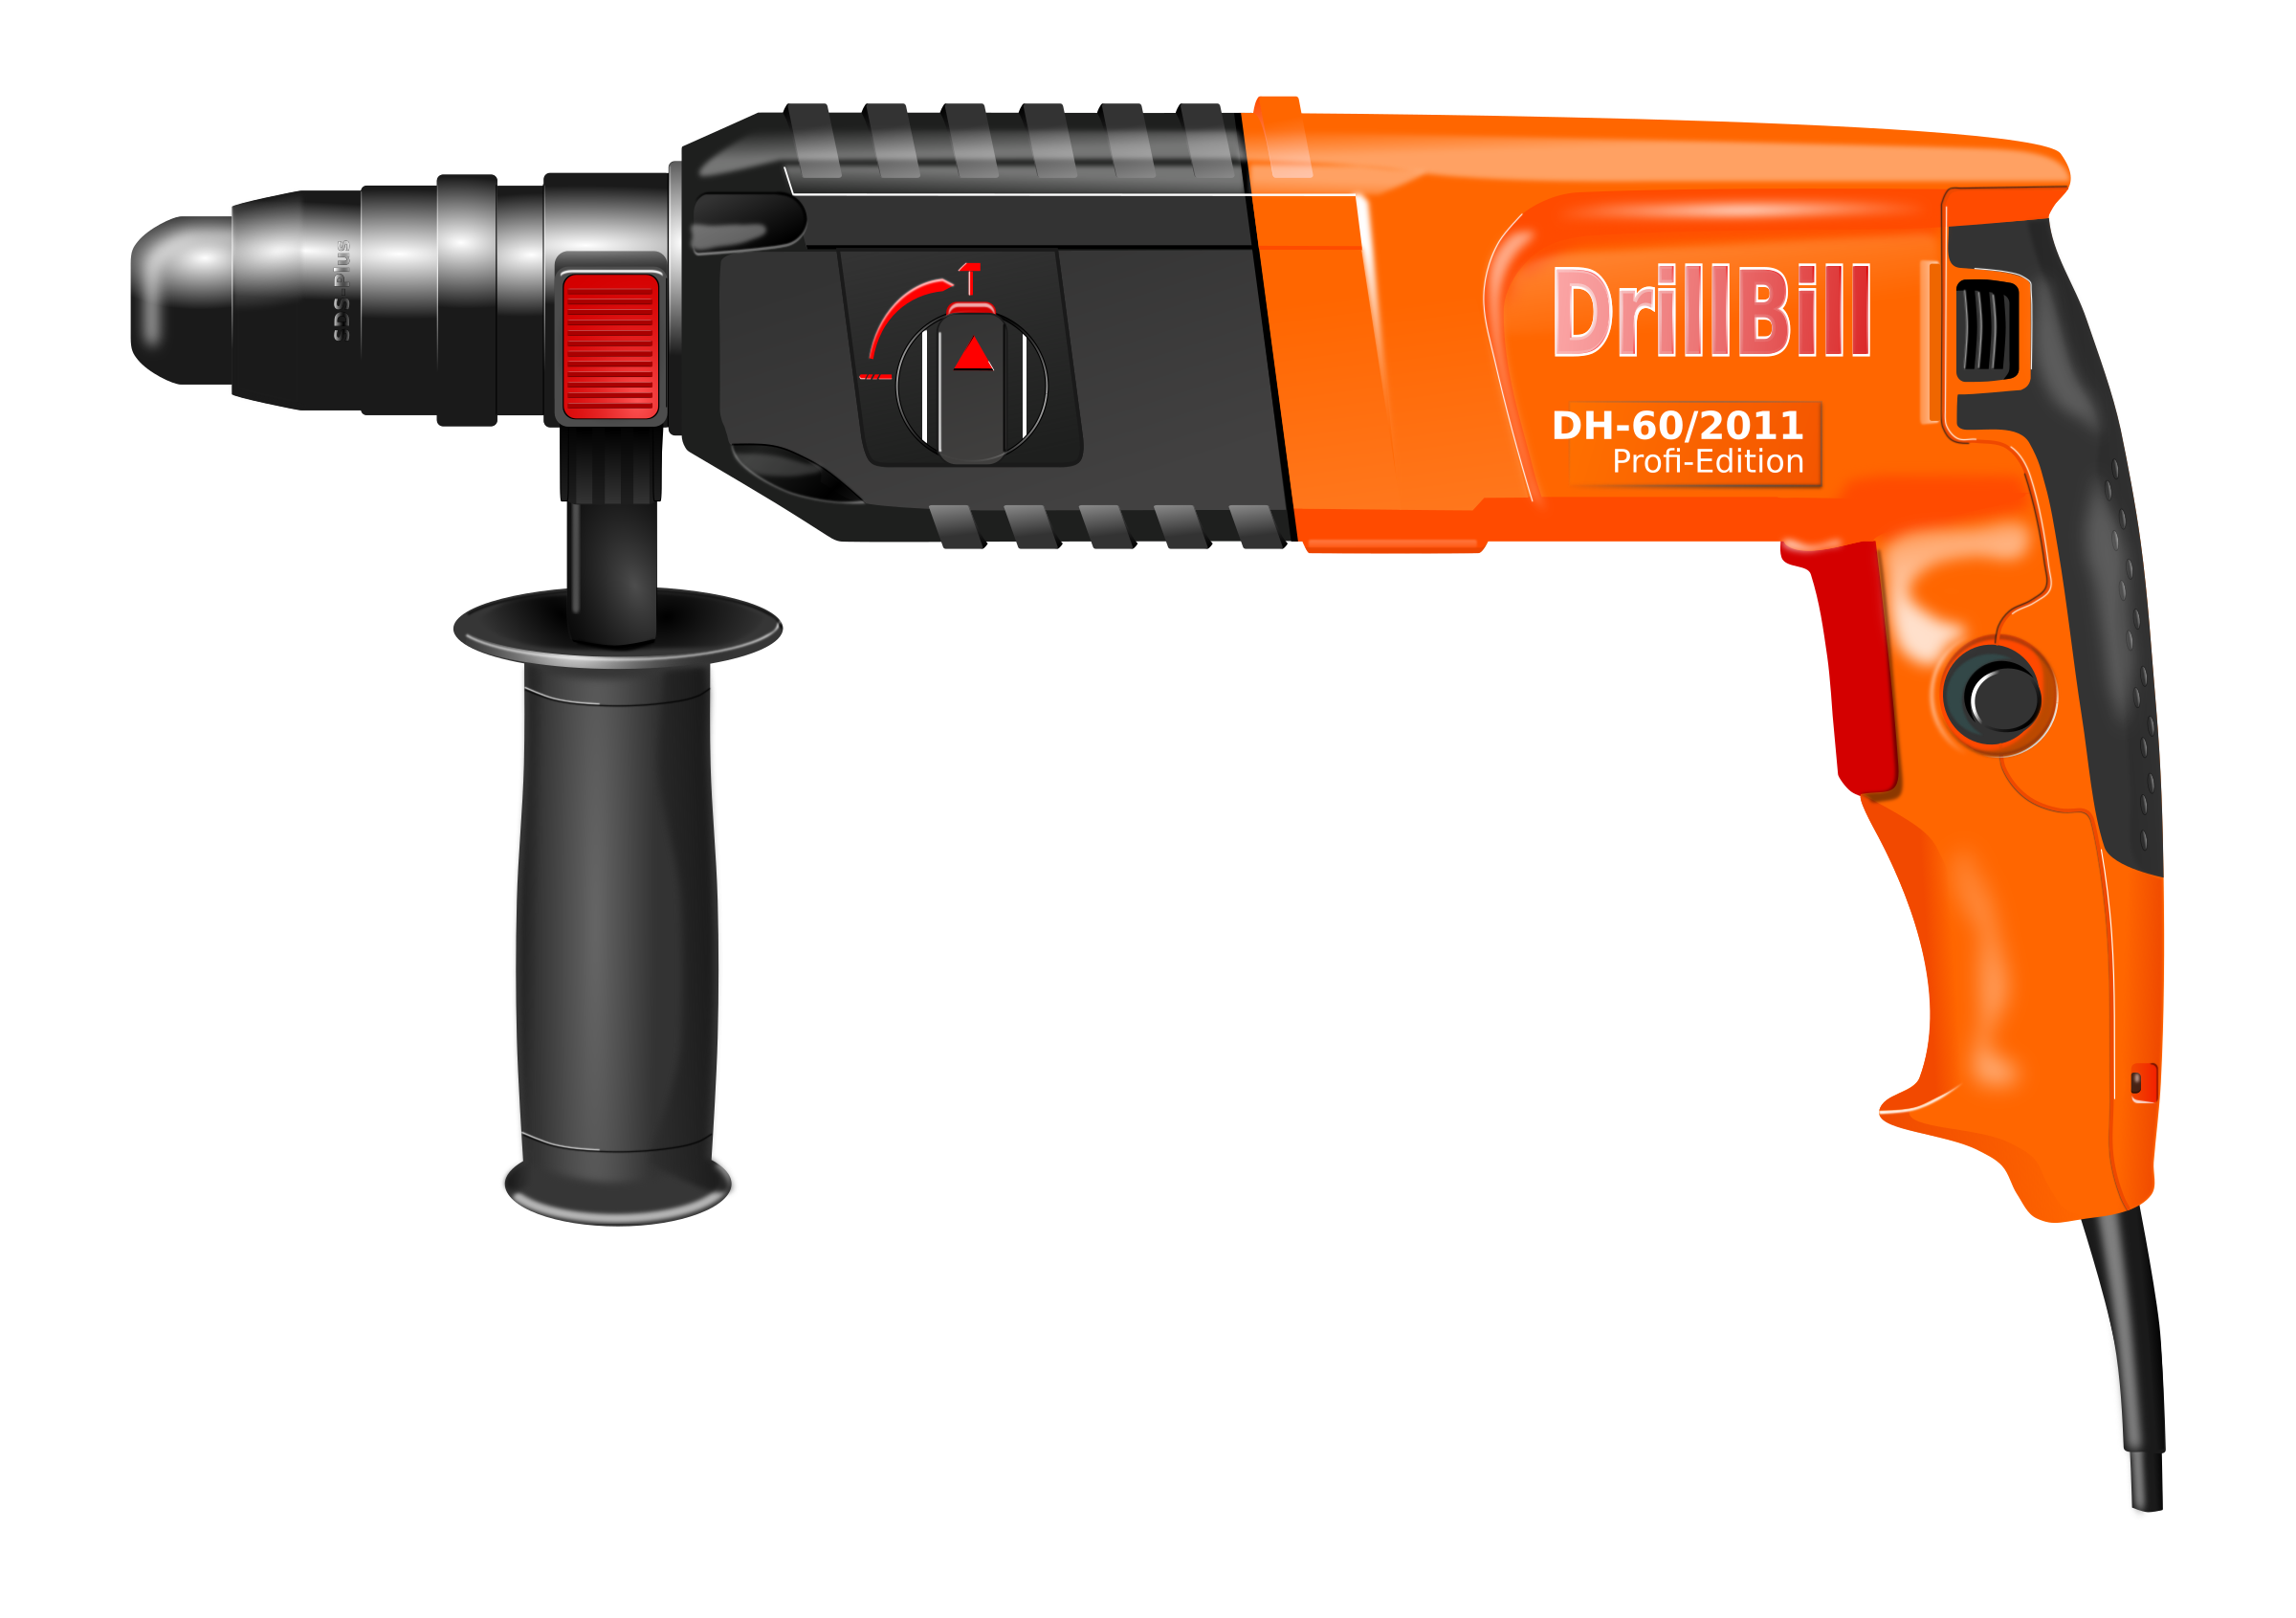 Clipart gun roofing. Photorealistic drill big image